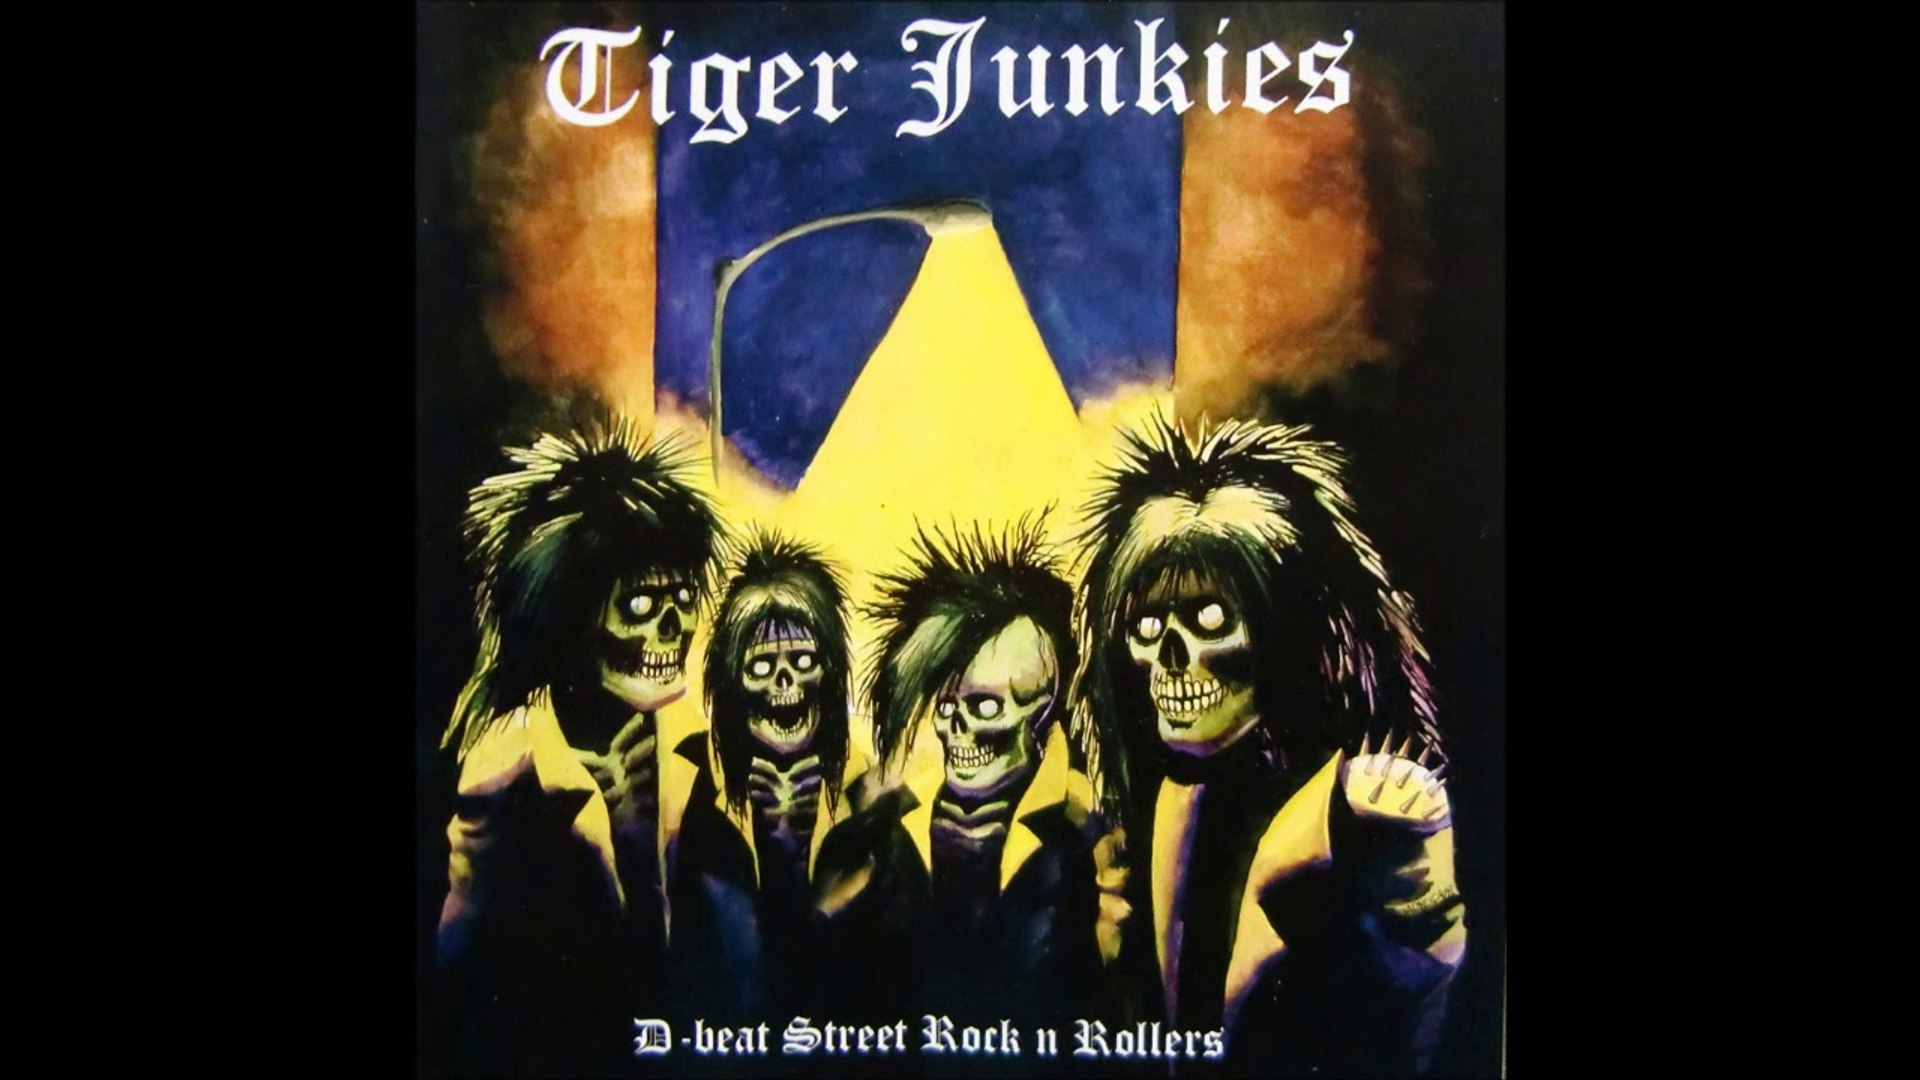 TIGER JUNKIES ''Sex, Sex, Sex''